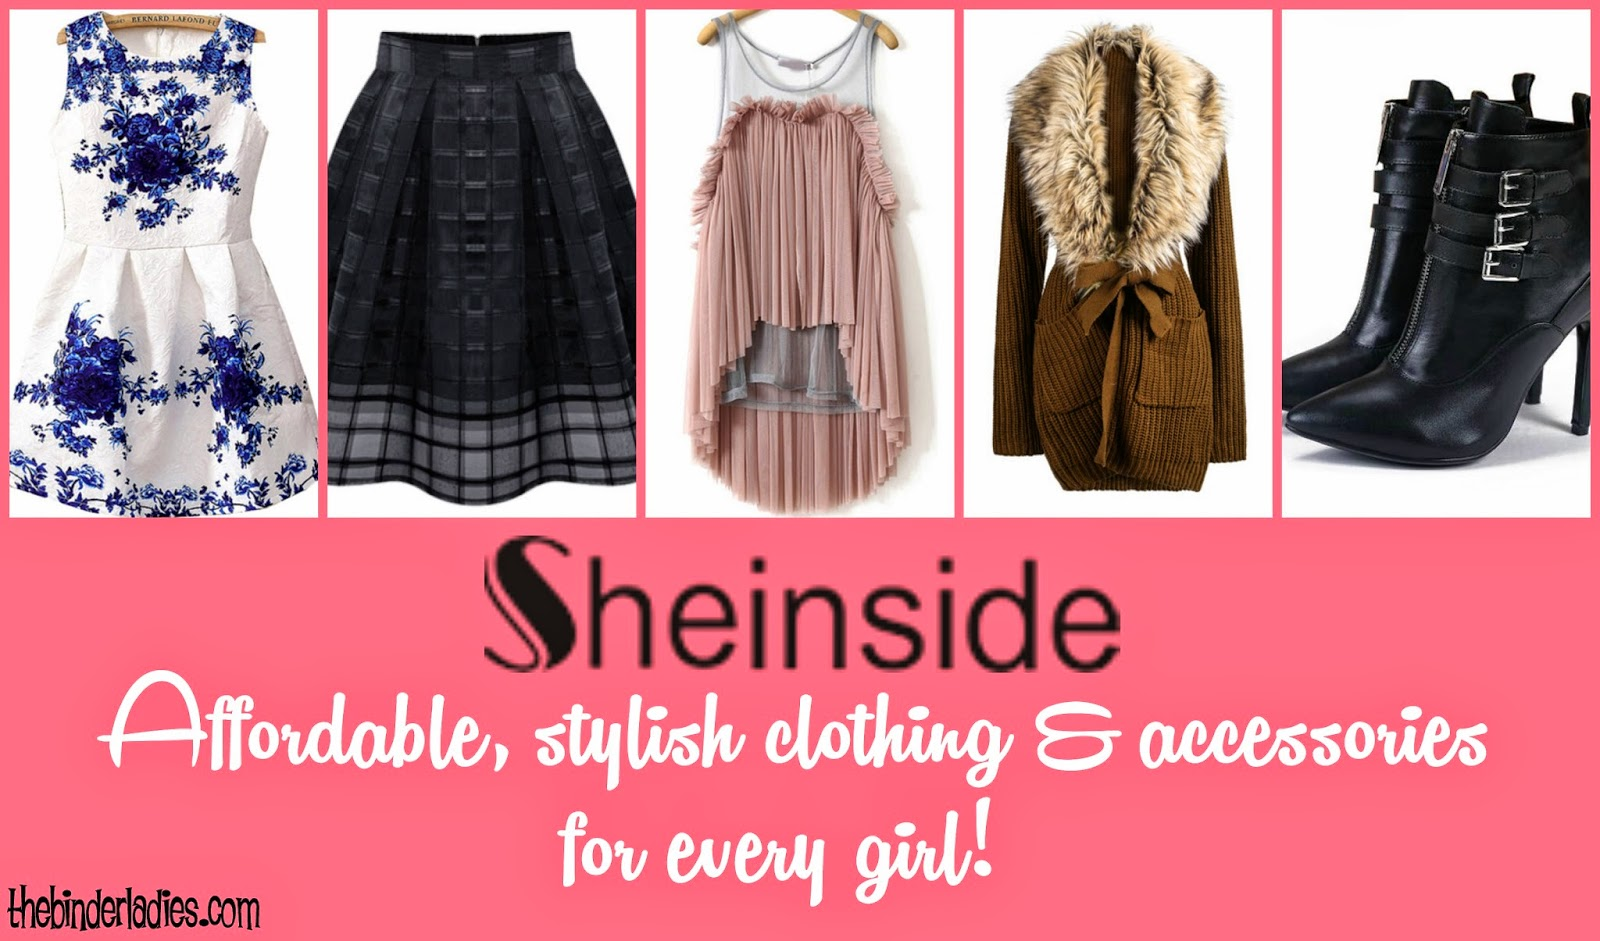 http://www.thebinderladies.com/2015/01/sheinside-com-affordable-unique.html